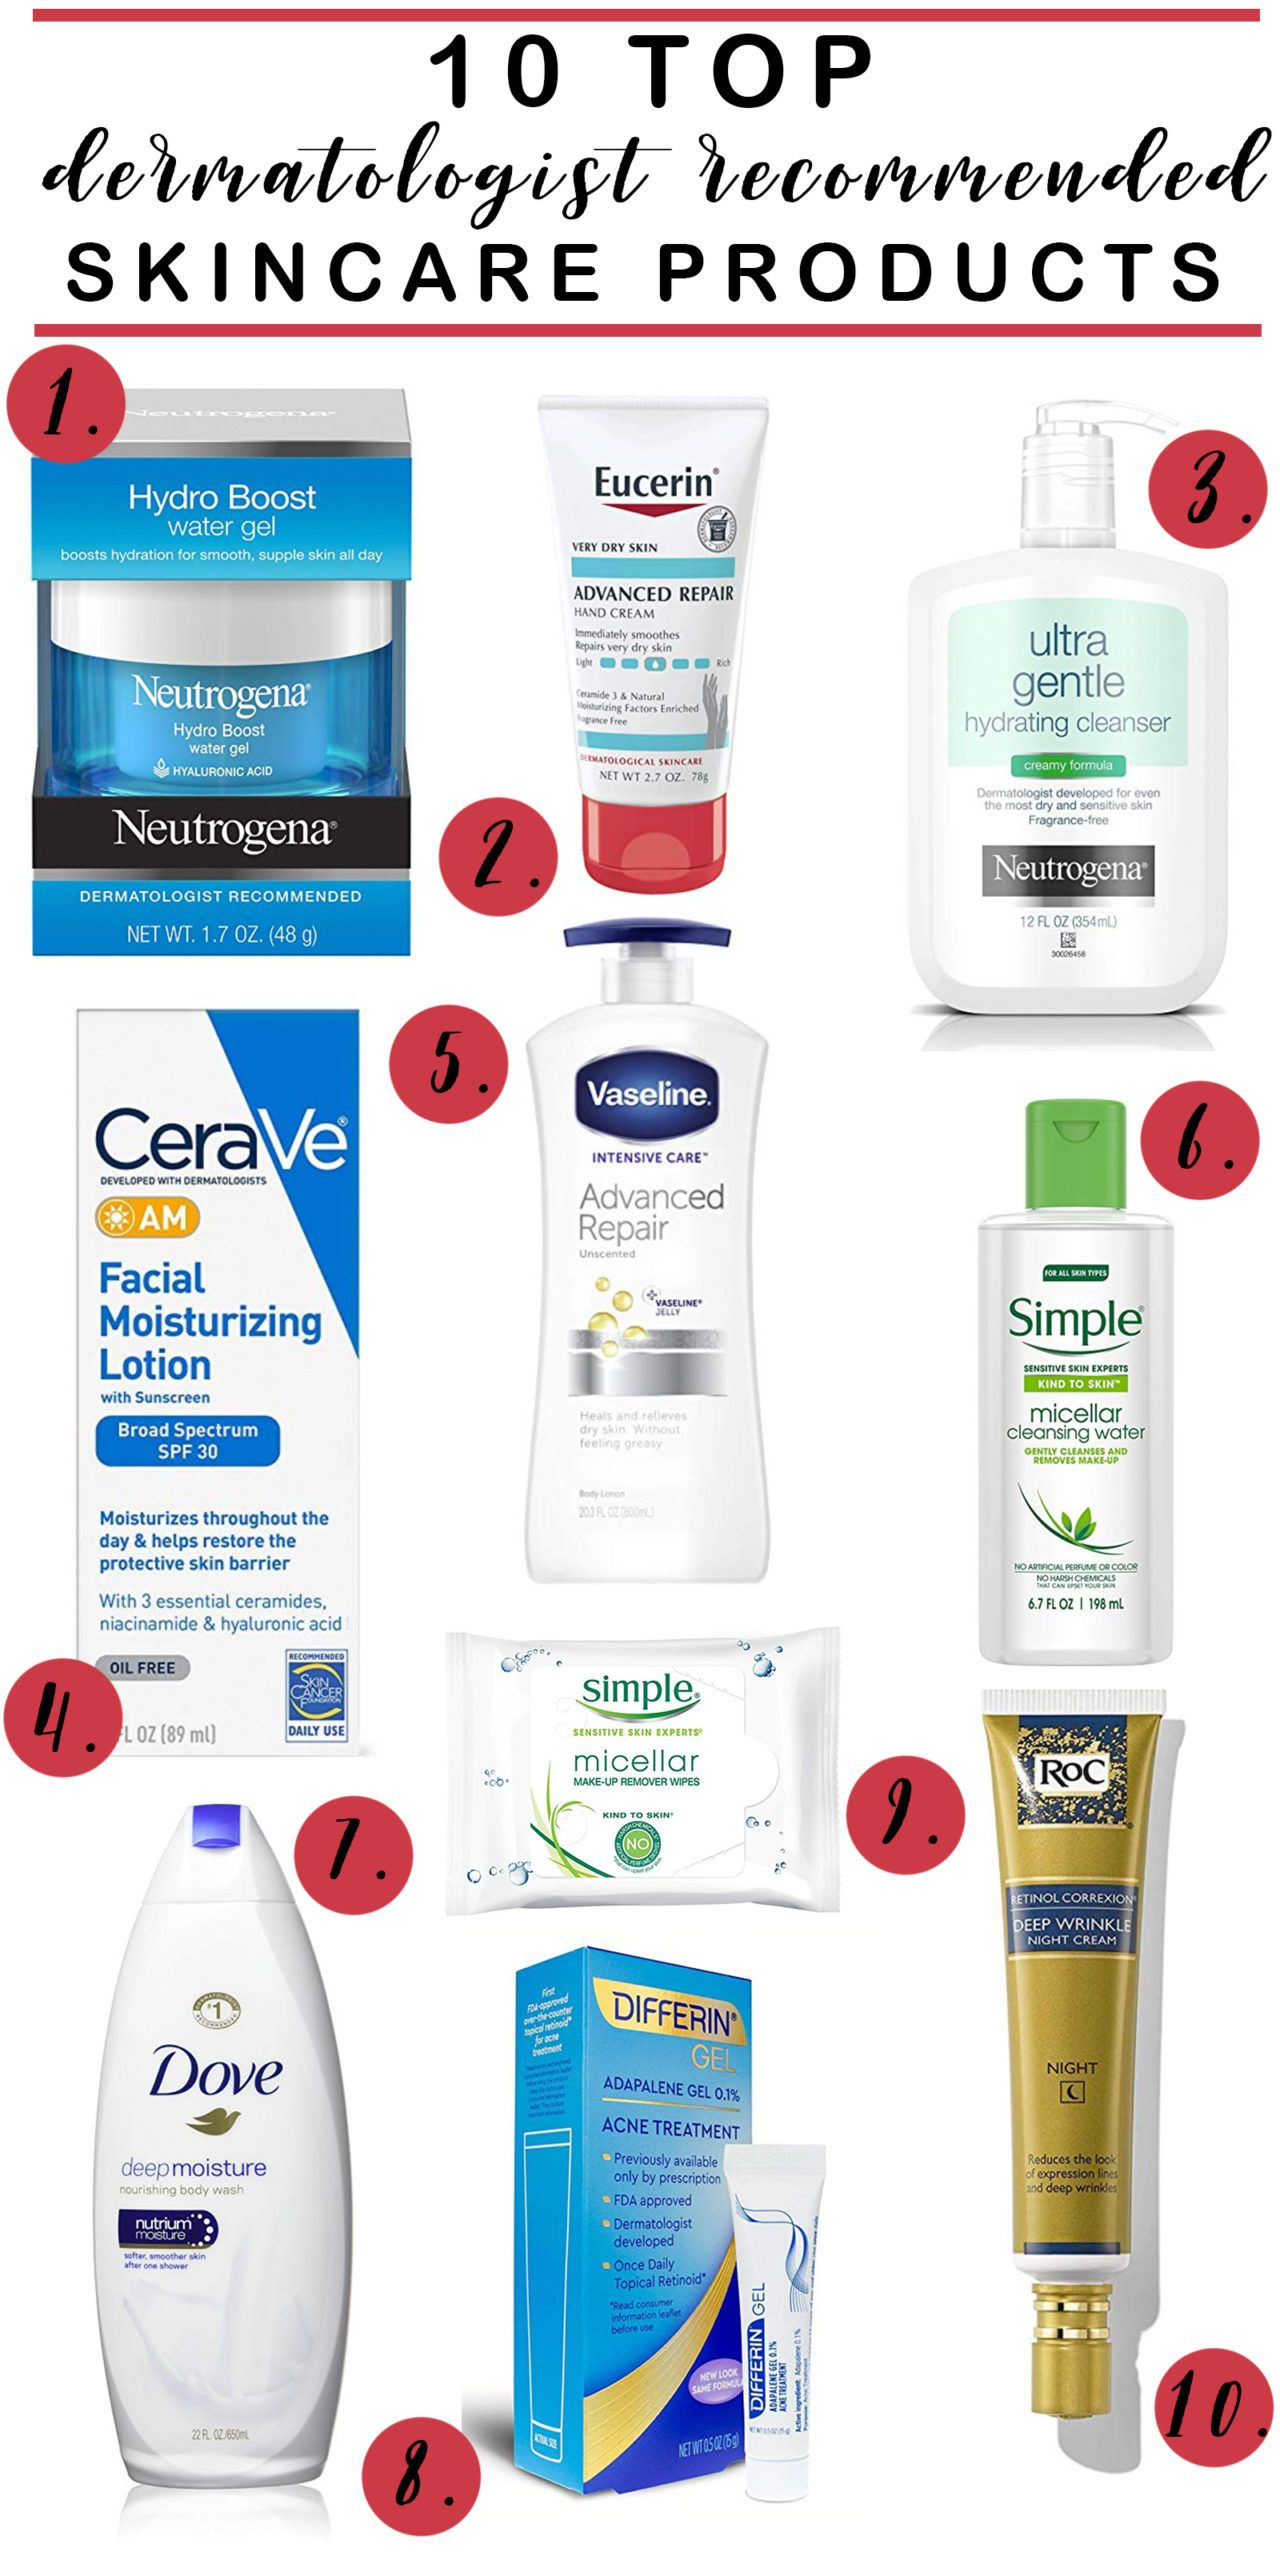 10 Top Dermatologist Recommended Drugstore Skincare Products In 2020 Dermatologist Recommended Skincare Drugstore Skincare Dermatologist Recommended